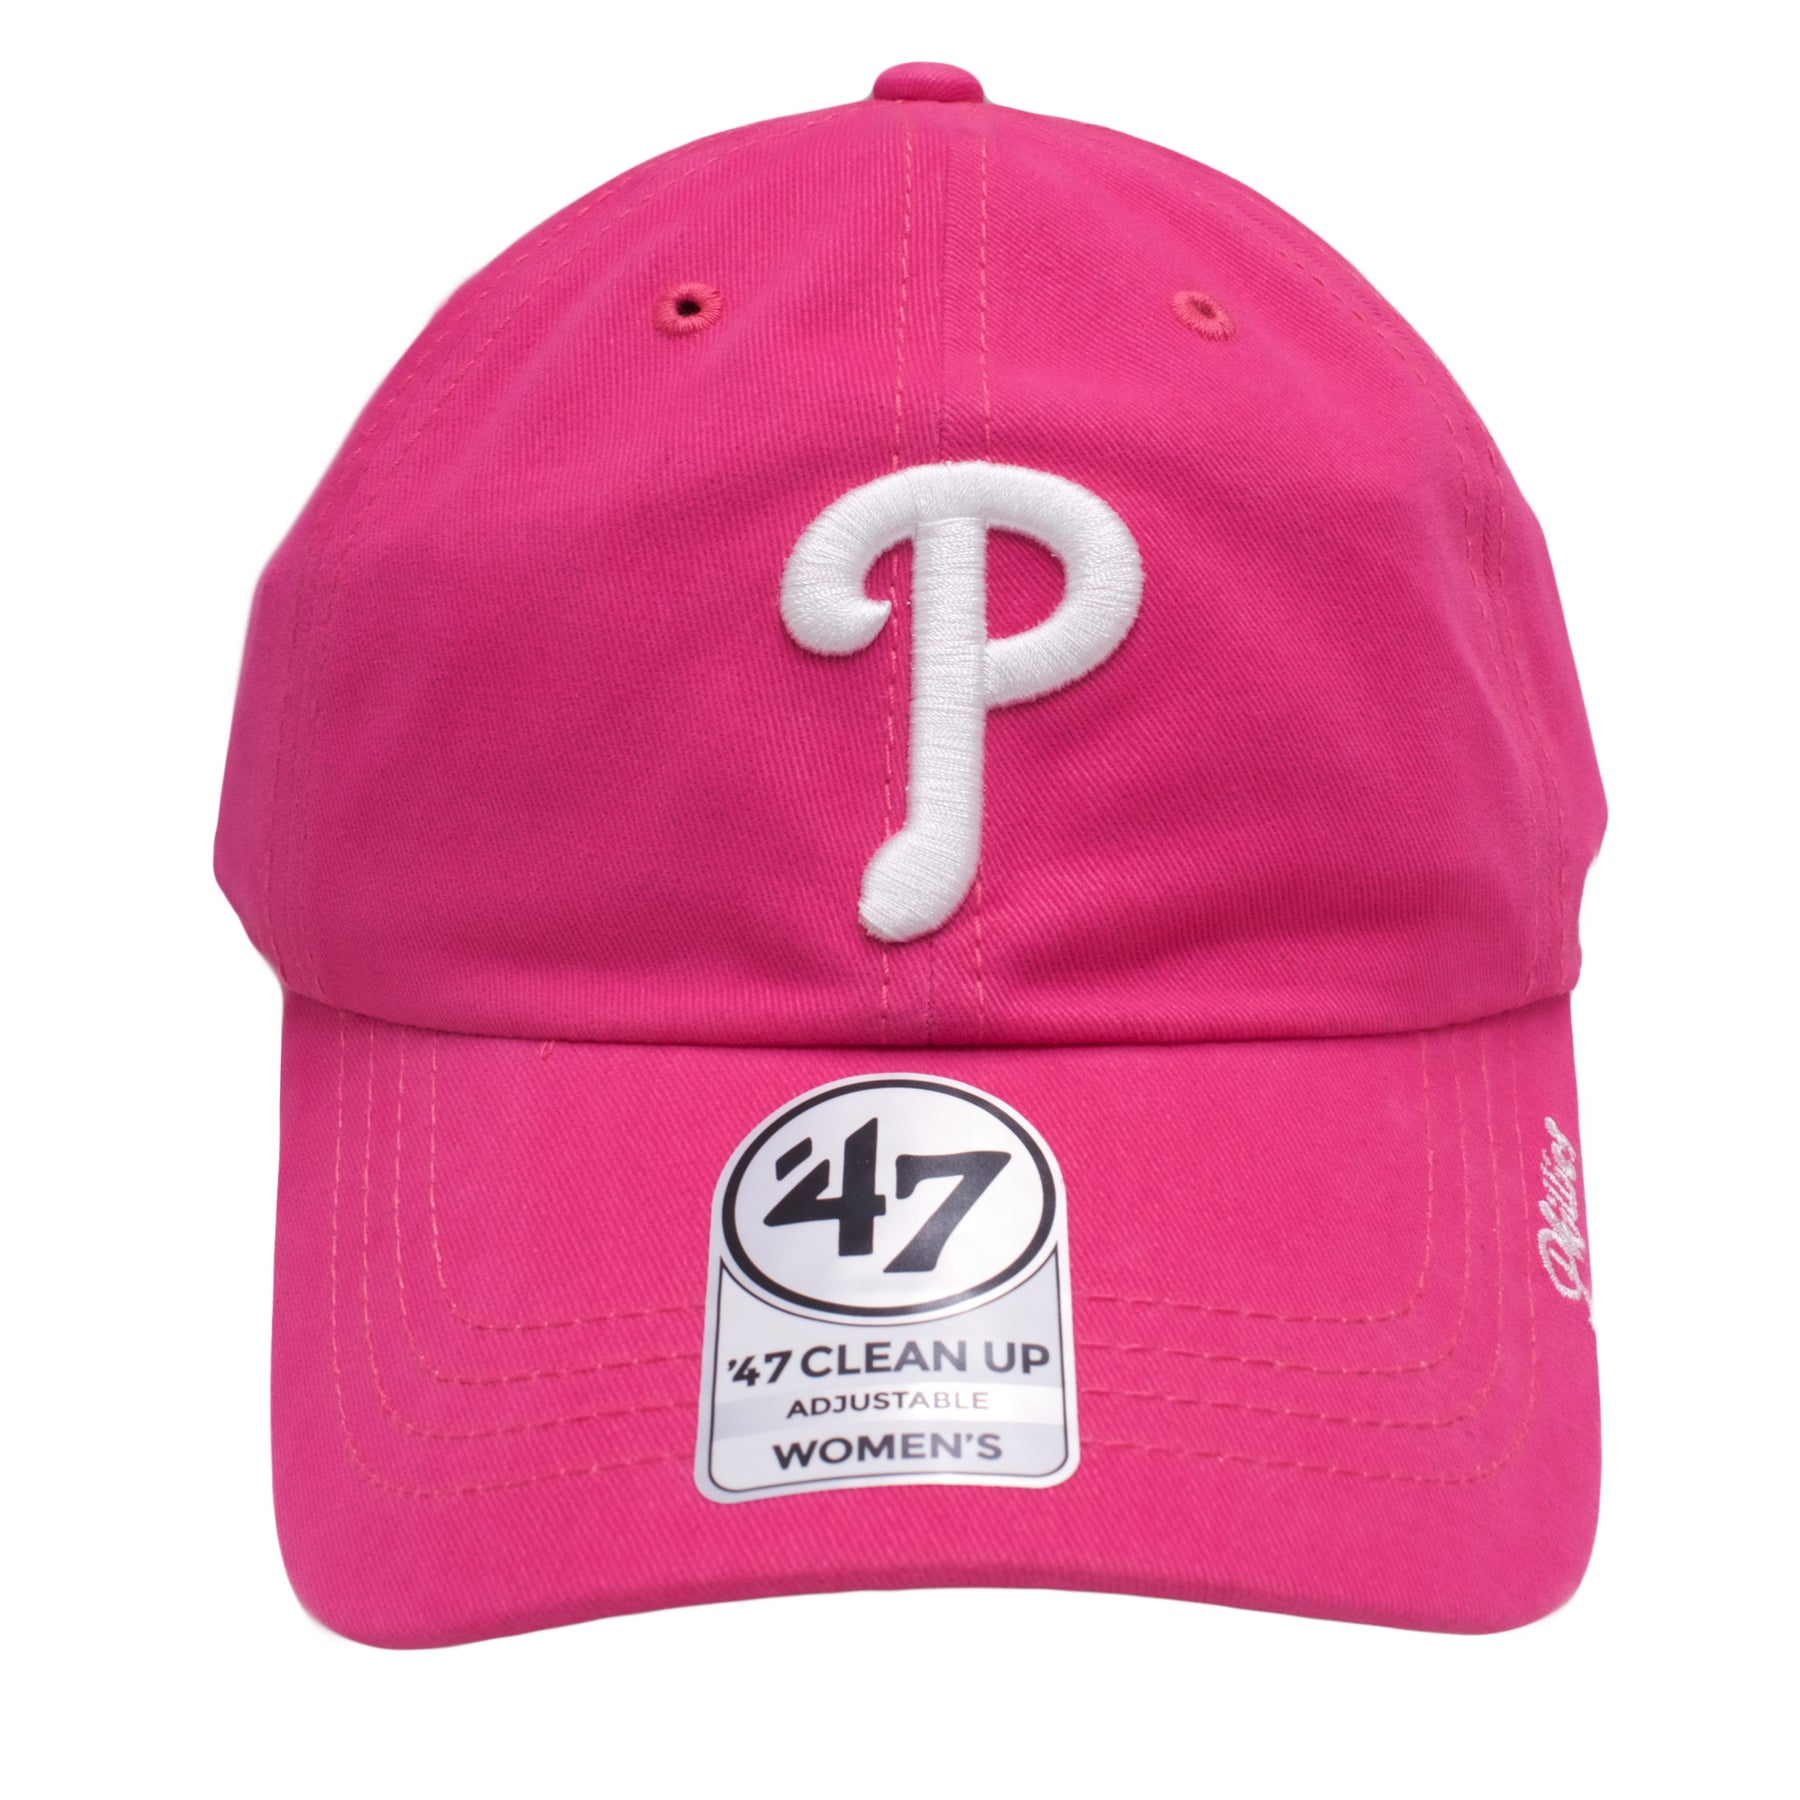 the pink phillies women s dad hat is hot pink with a white phillies logo 4024da72c